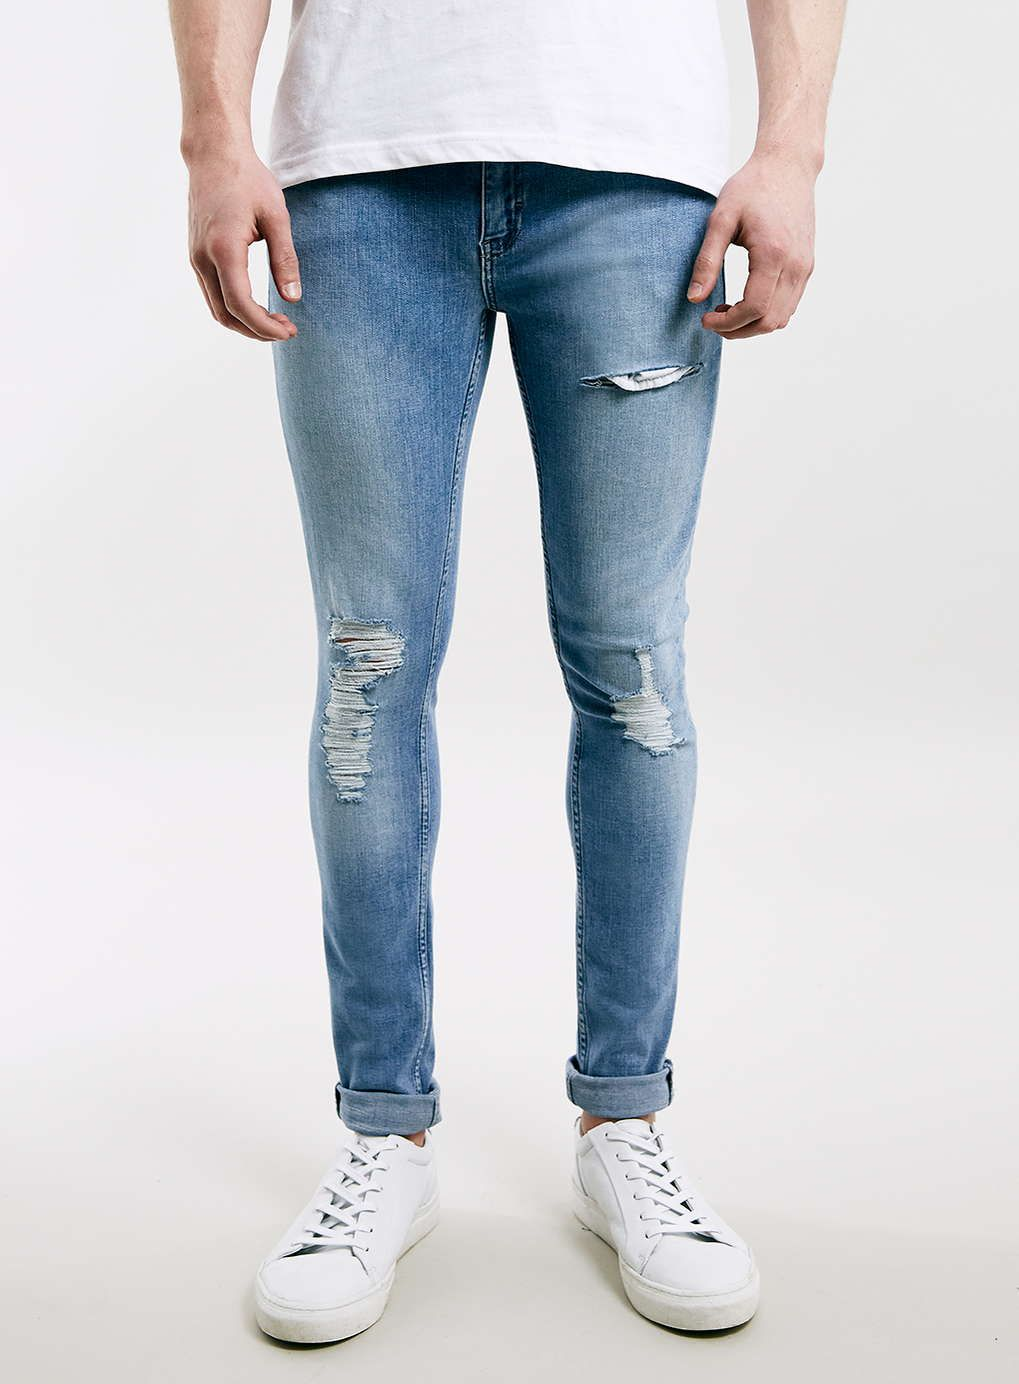 Bleach Wash Ripped Spray On Skinny Jeans | Skinny, Products and ...